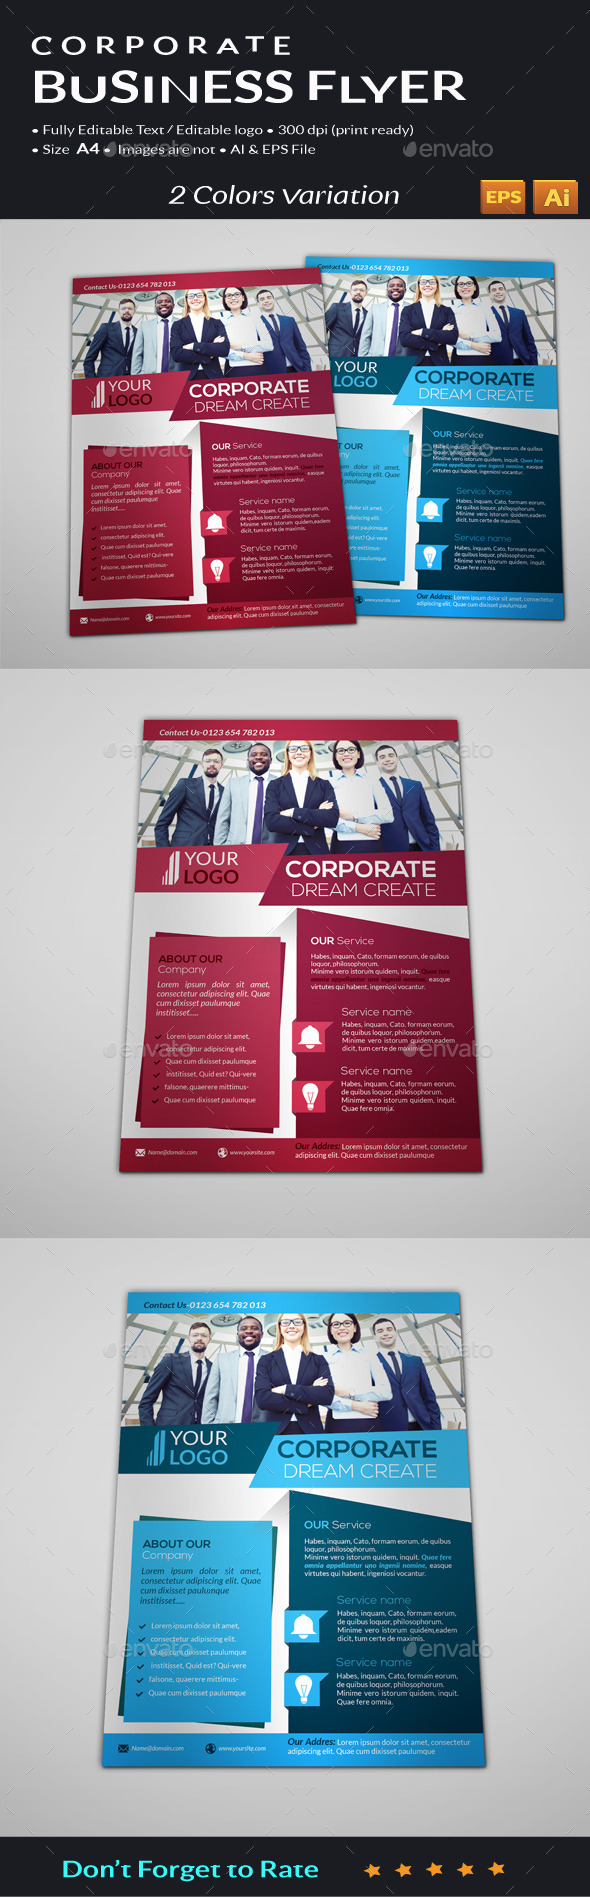 GraphicRiver Corporate Business Flyer 11171656